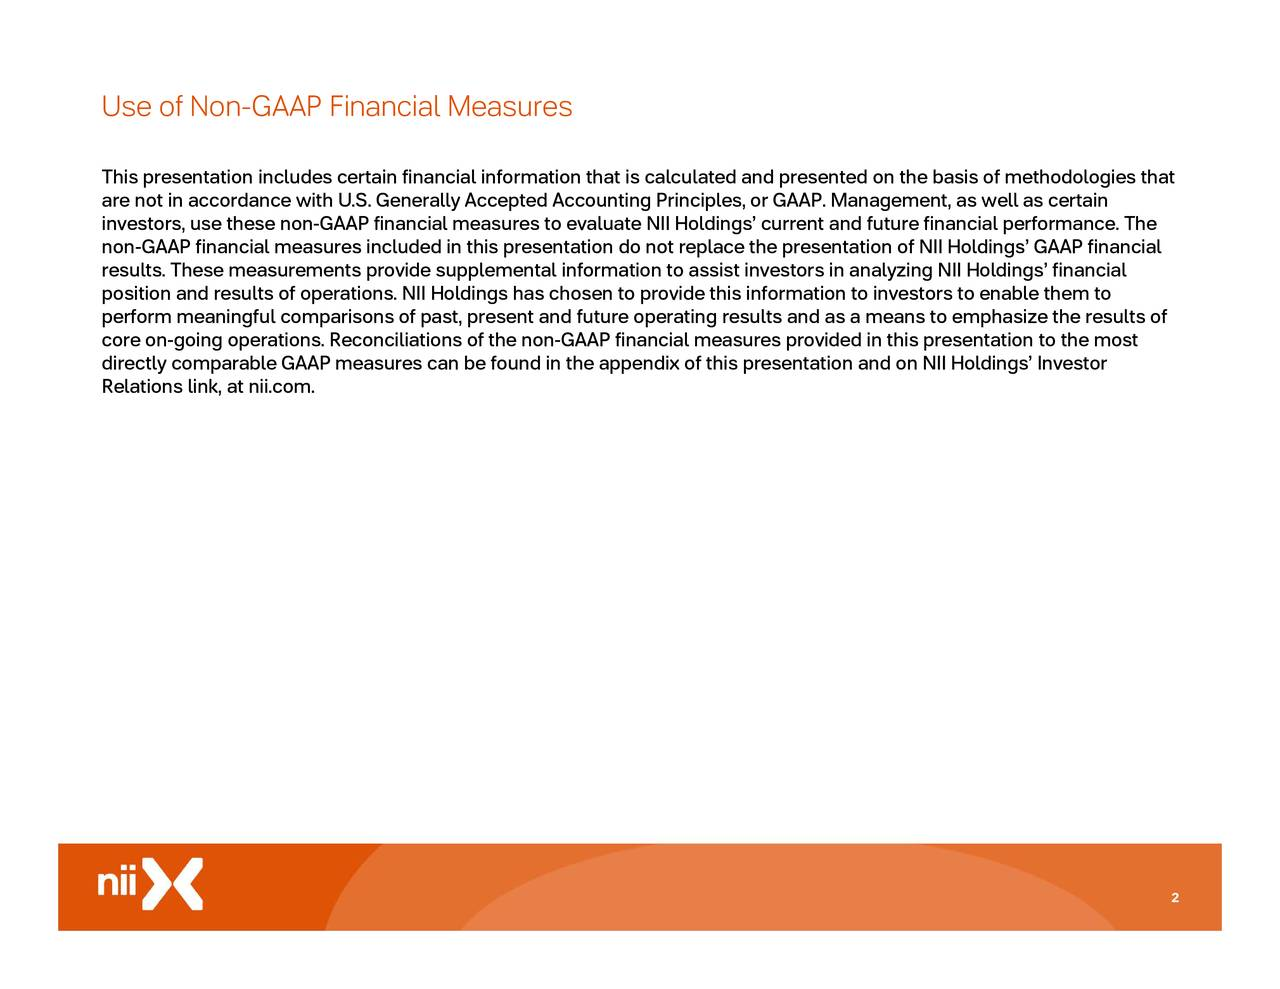 to emphasize the results of d on NII Holdings' Investor ented on the basis of methodologies thatnancial s ation to investors to enable them to GAAP. Management, as well as certain asures provided in this presentation to the most erating results and as a means ndix of this presentation an l information thaof the non-GAAP financial mesor ldings has chosen to provide this inform rally Accepted Accounting Principles, or Use o ThispresentaAiPn niladneliataineia,auai.com.osuplltisnsan be found in the appe